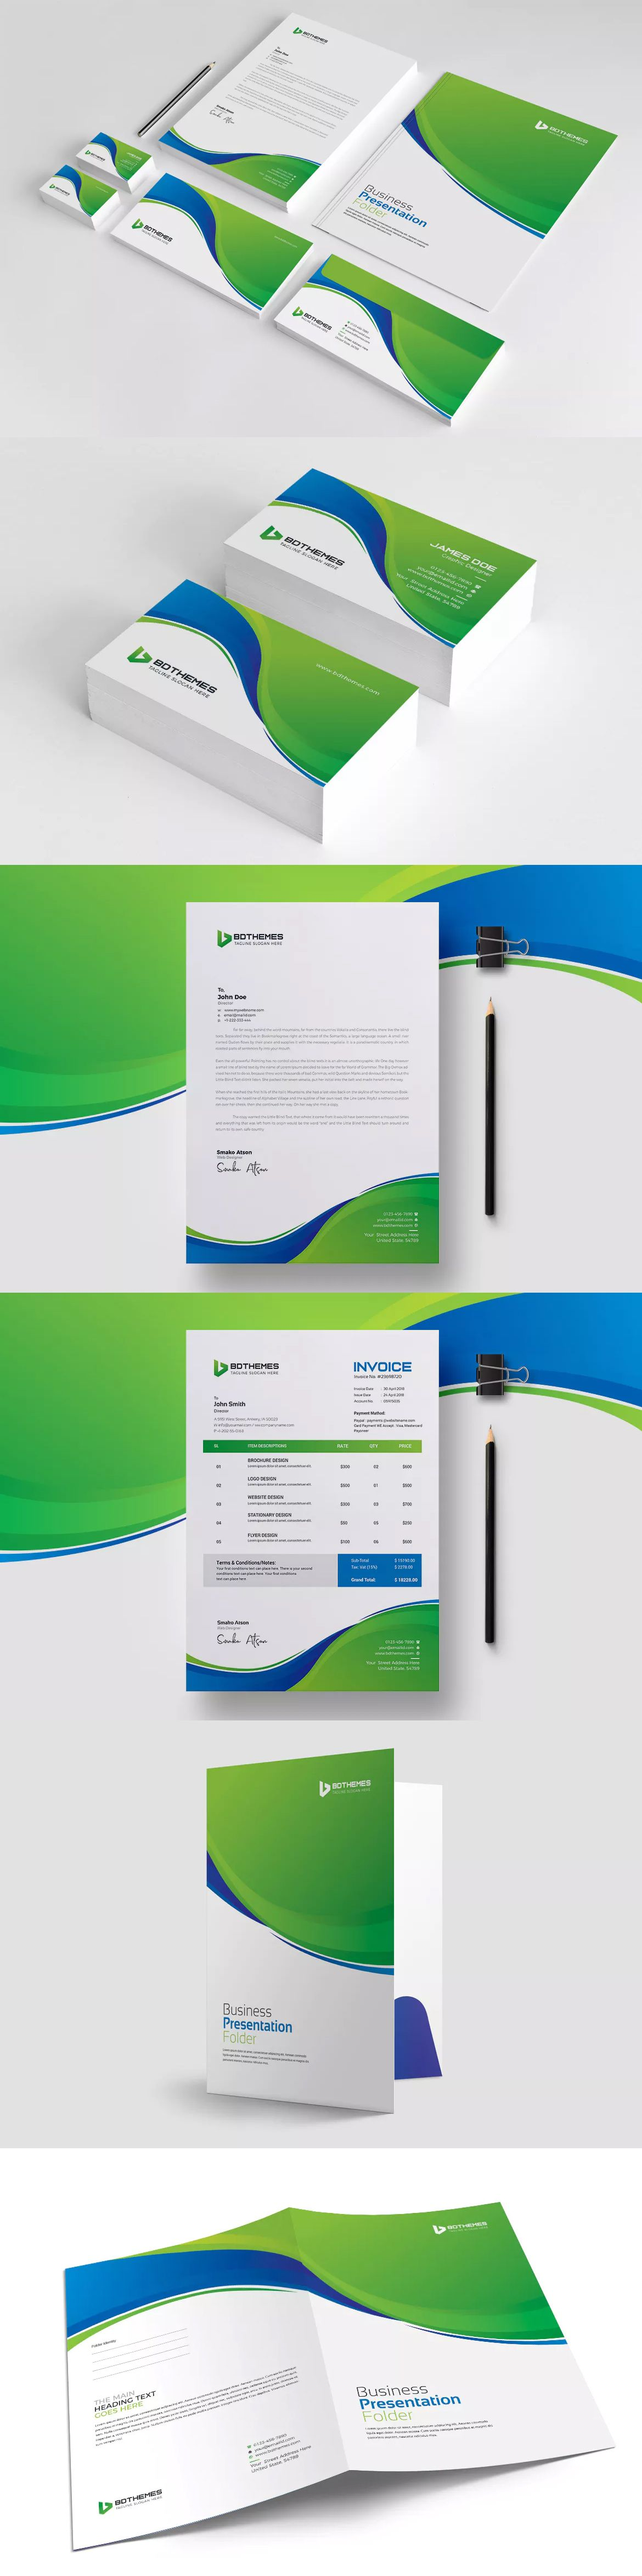 Business stationery template ai eps psd a4 us paper size business stationery template ai eps psd a4 us paper size fbccfo Images